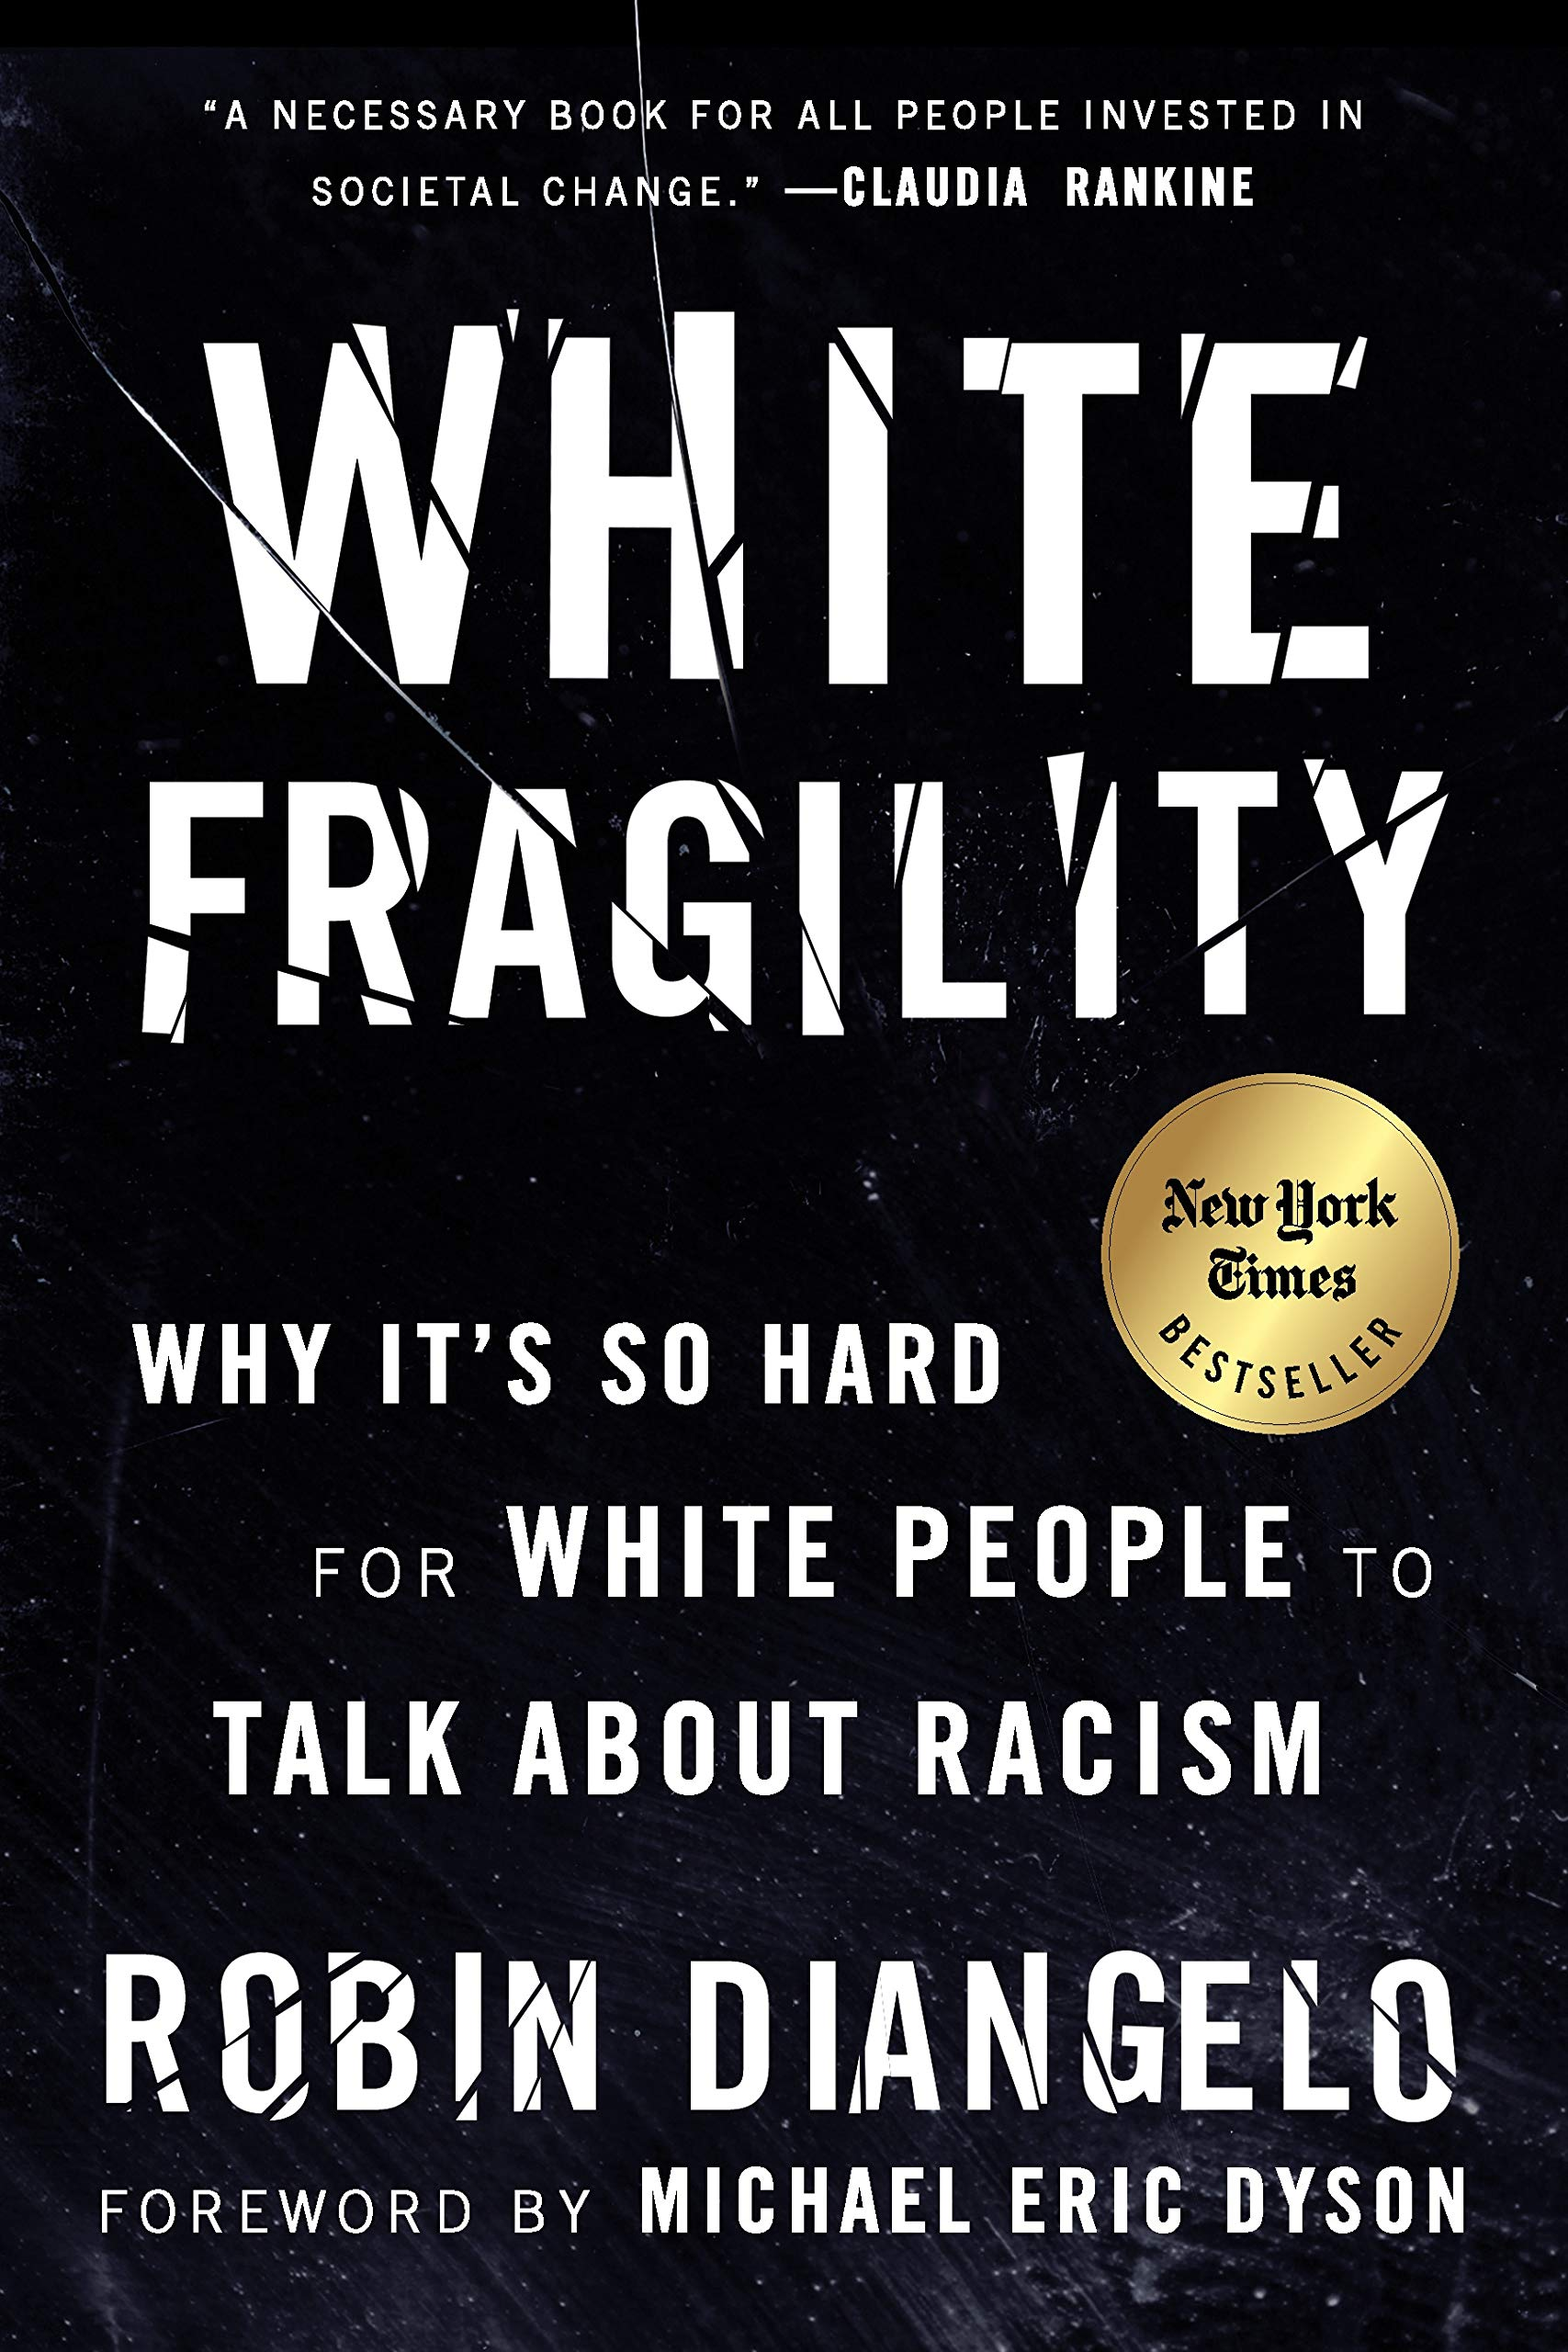 Friday Reads: White Fragility: Why It's So Hard for White People to Talk About Racism by Robin DiAngelo